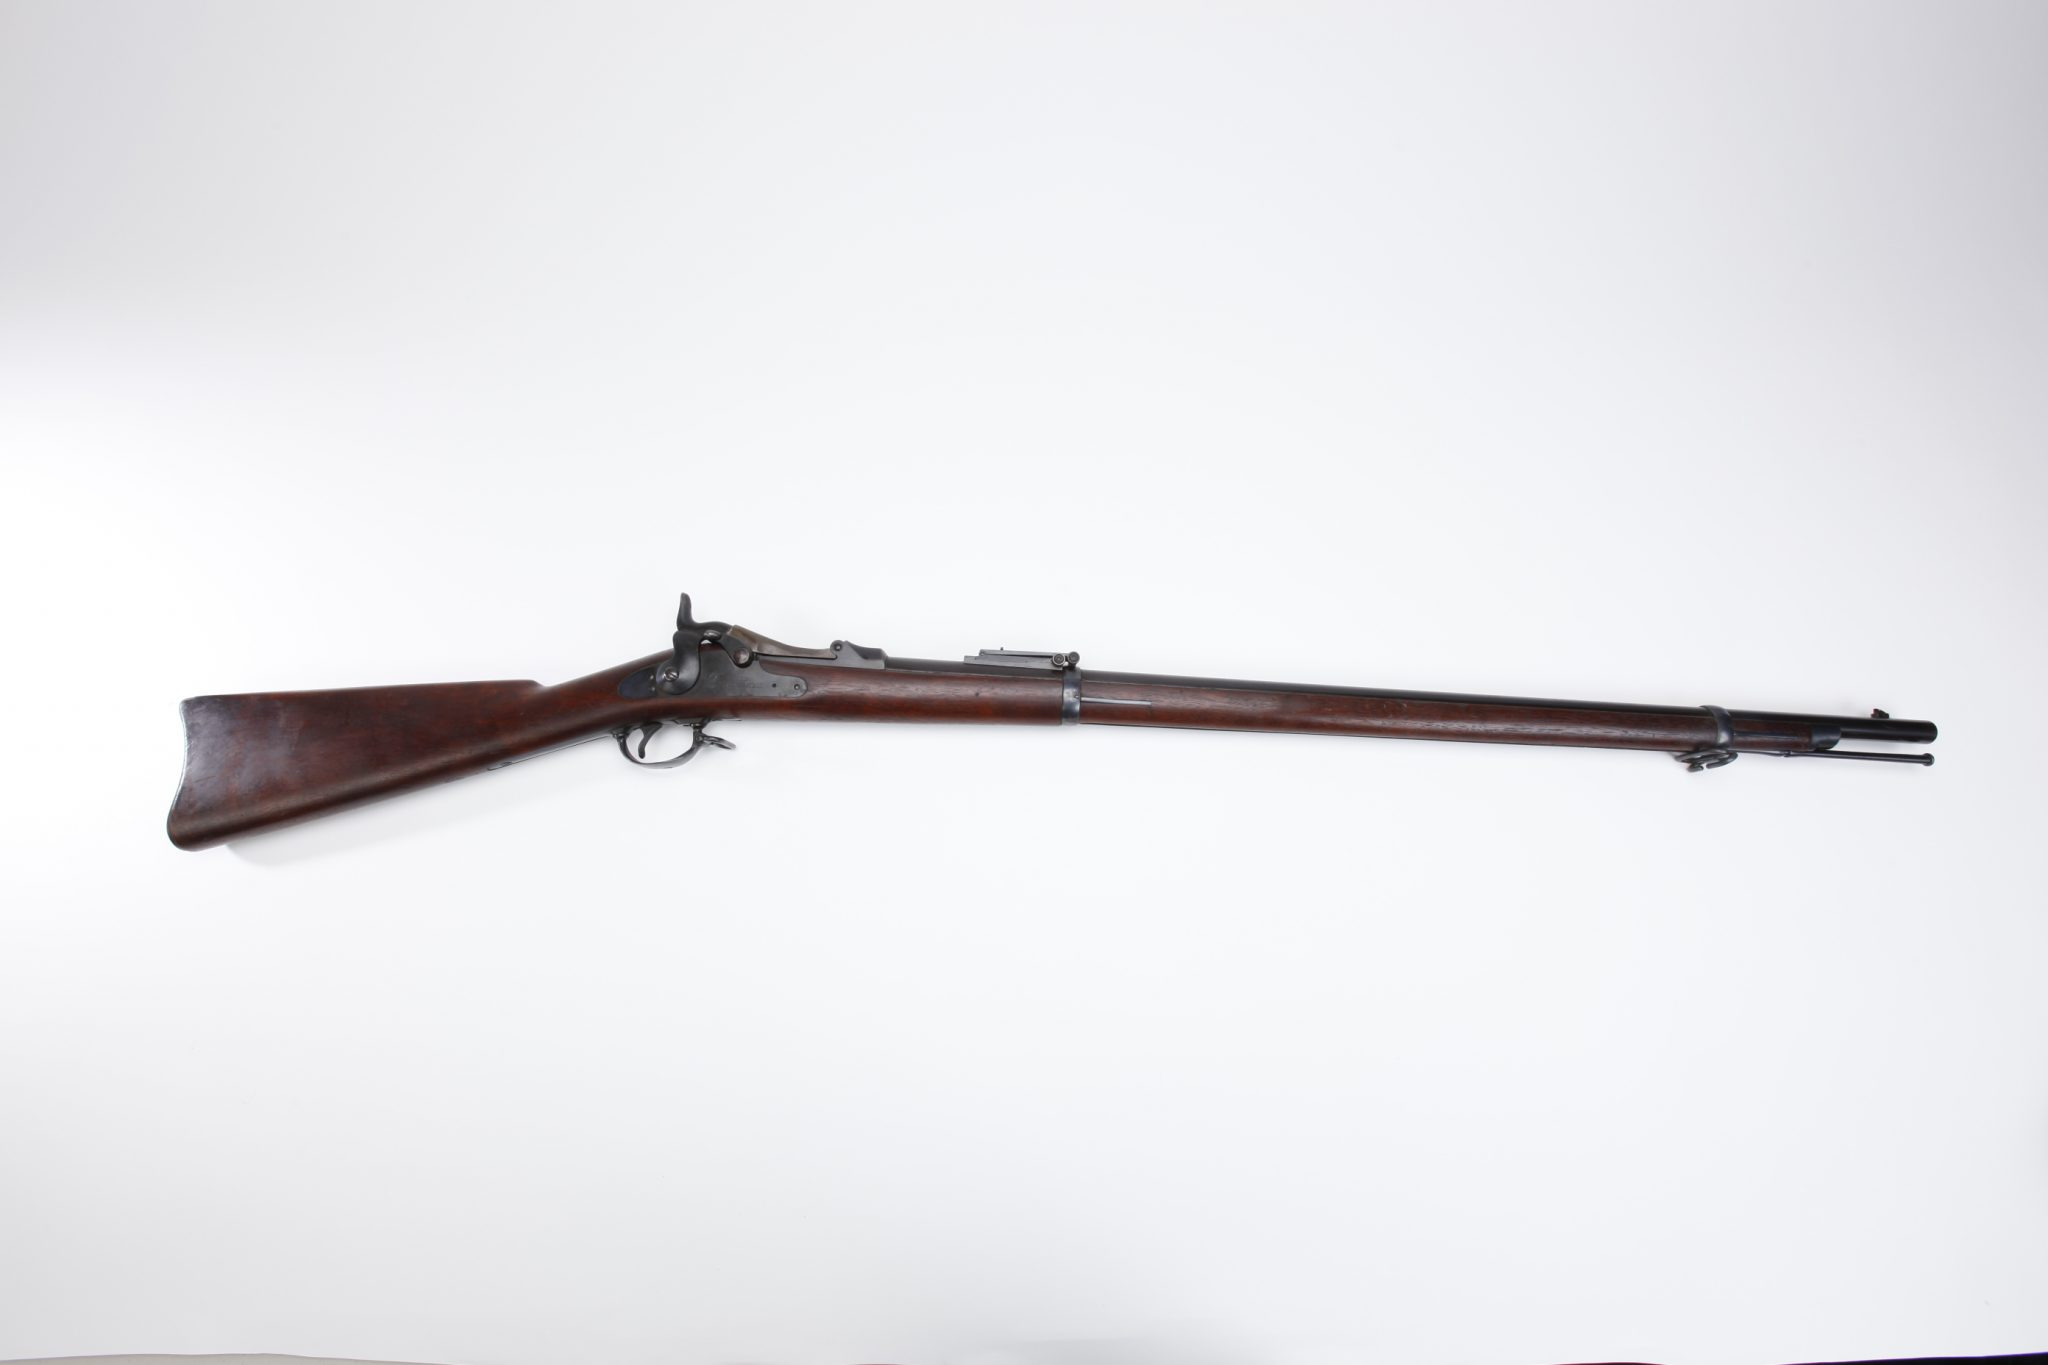 The Springfield Model 1873 Rifle - The Campaign for the National Museum of  the United States Army